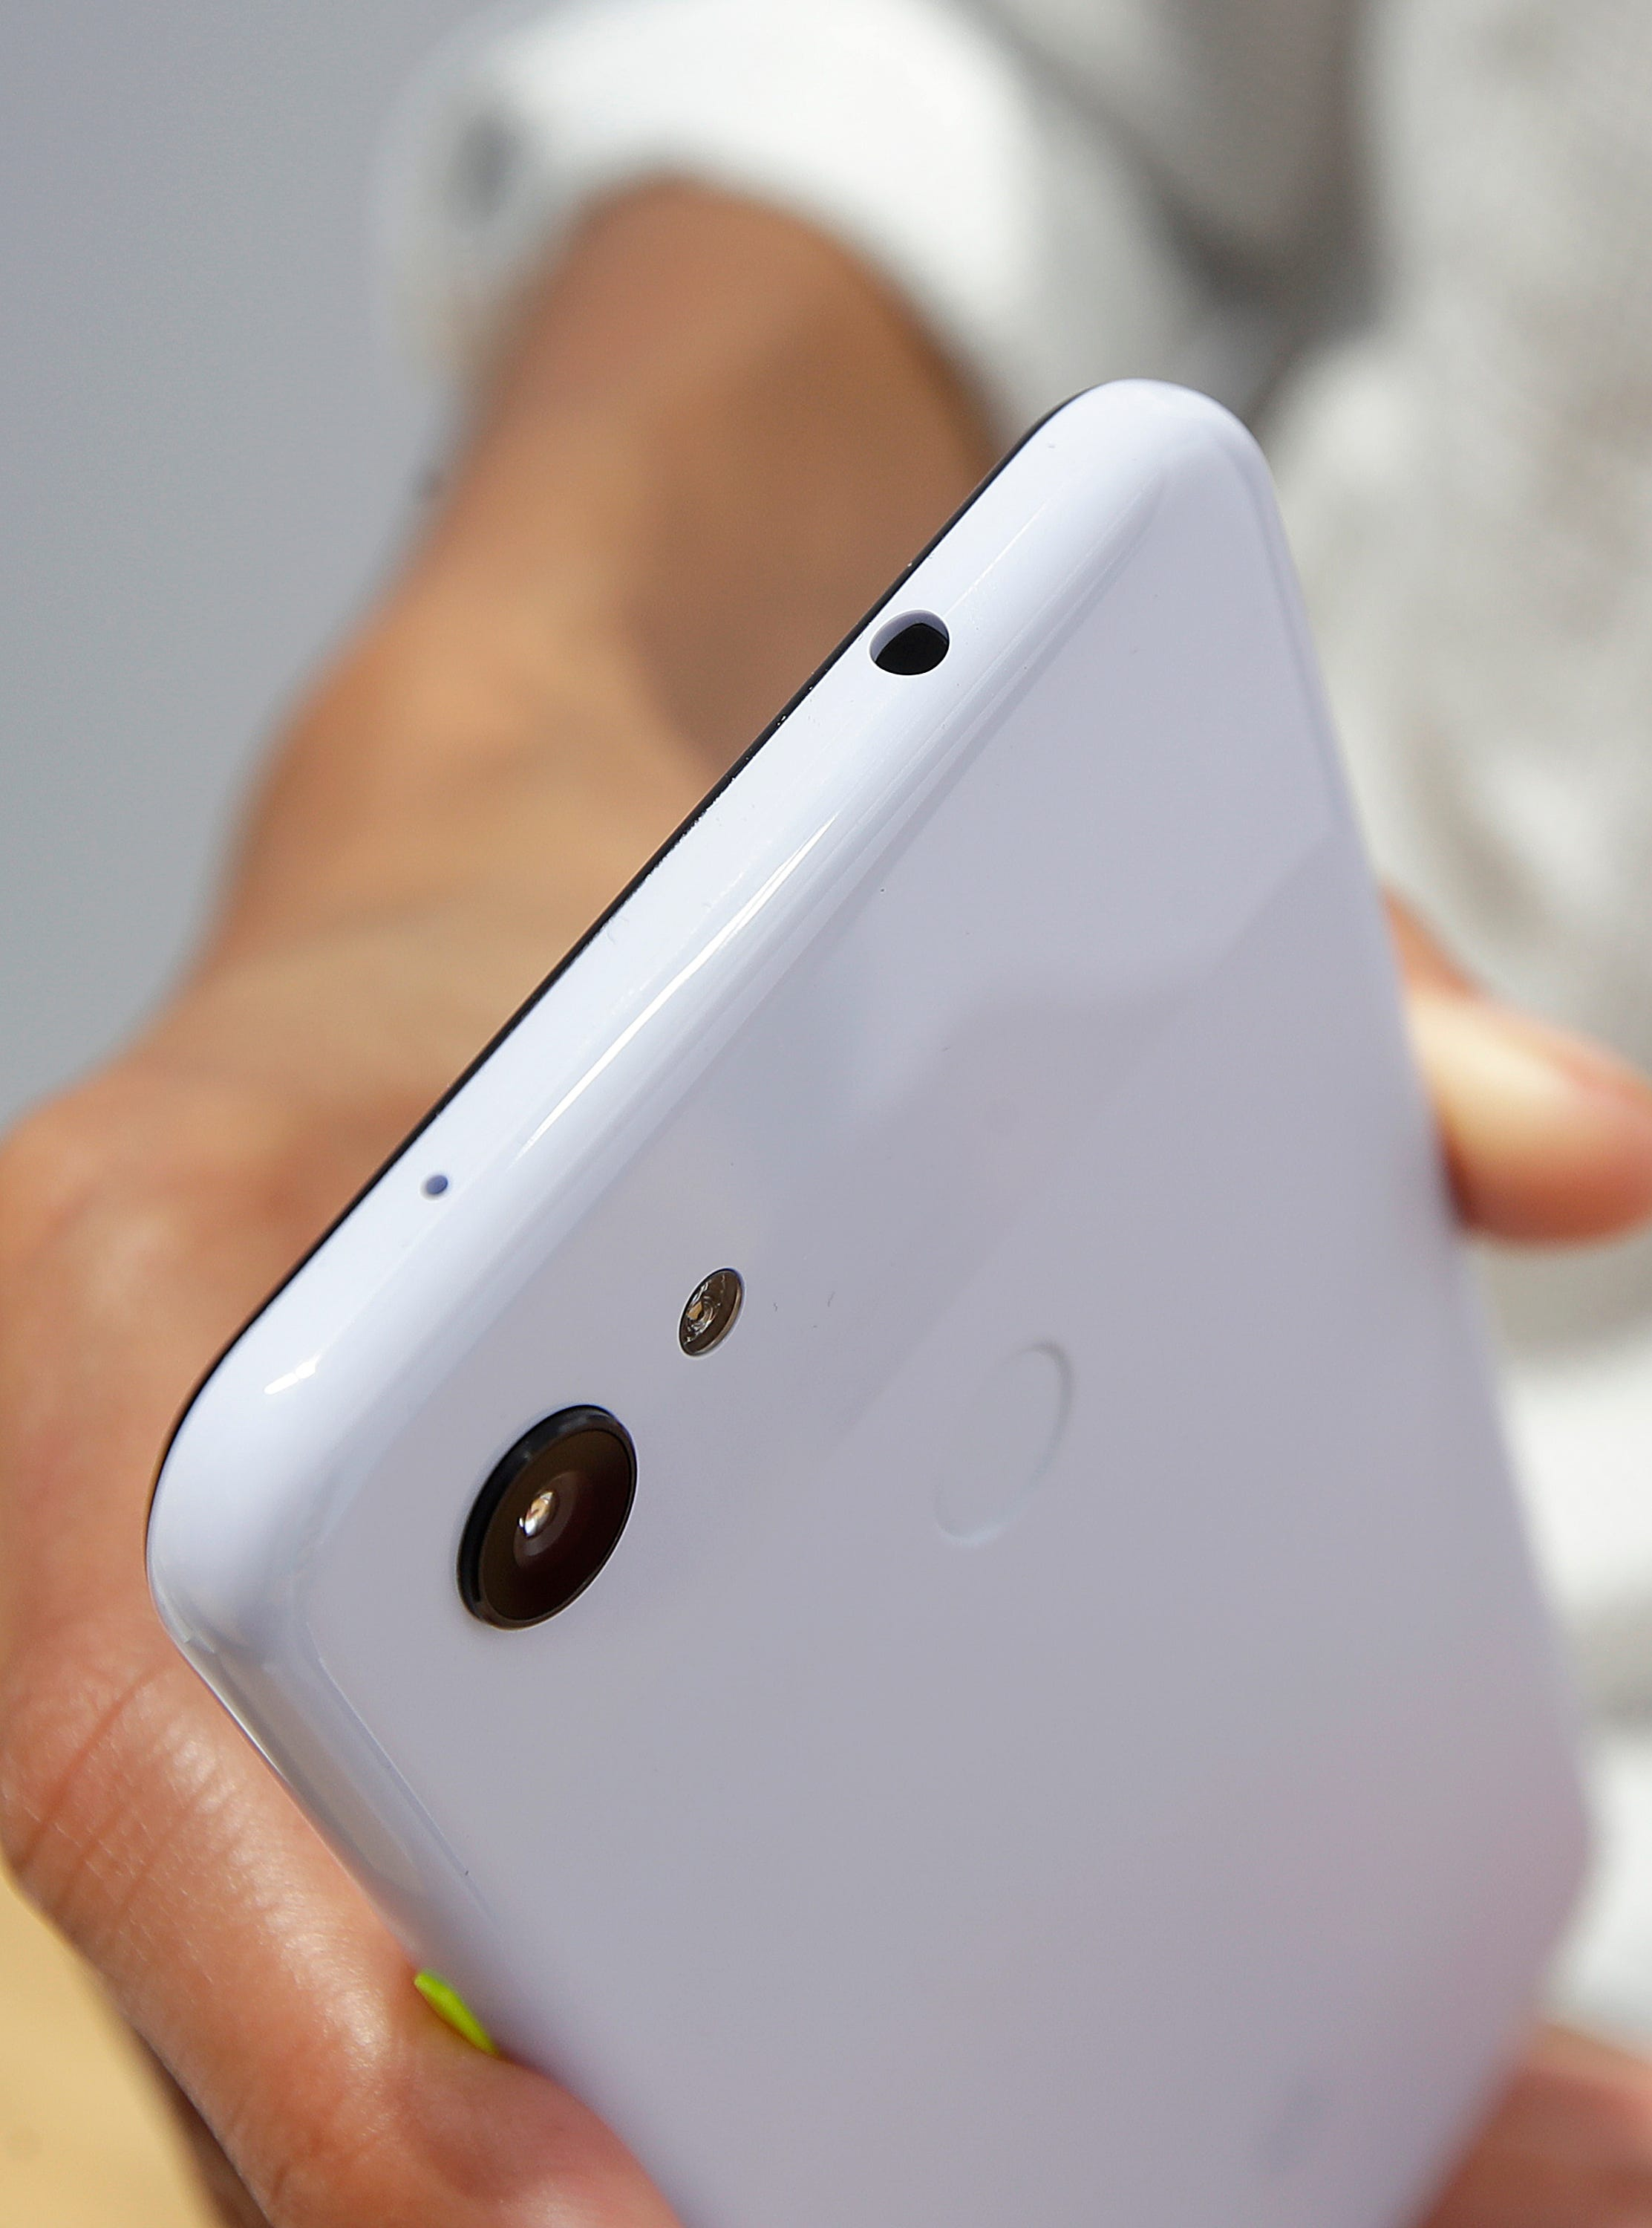 The audio jack is shown on a Google Pixel 3a XL phone at the Google I/O conference in Mountain View, Calif., Tuesday, May 7, 2019.